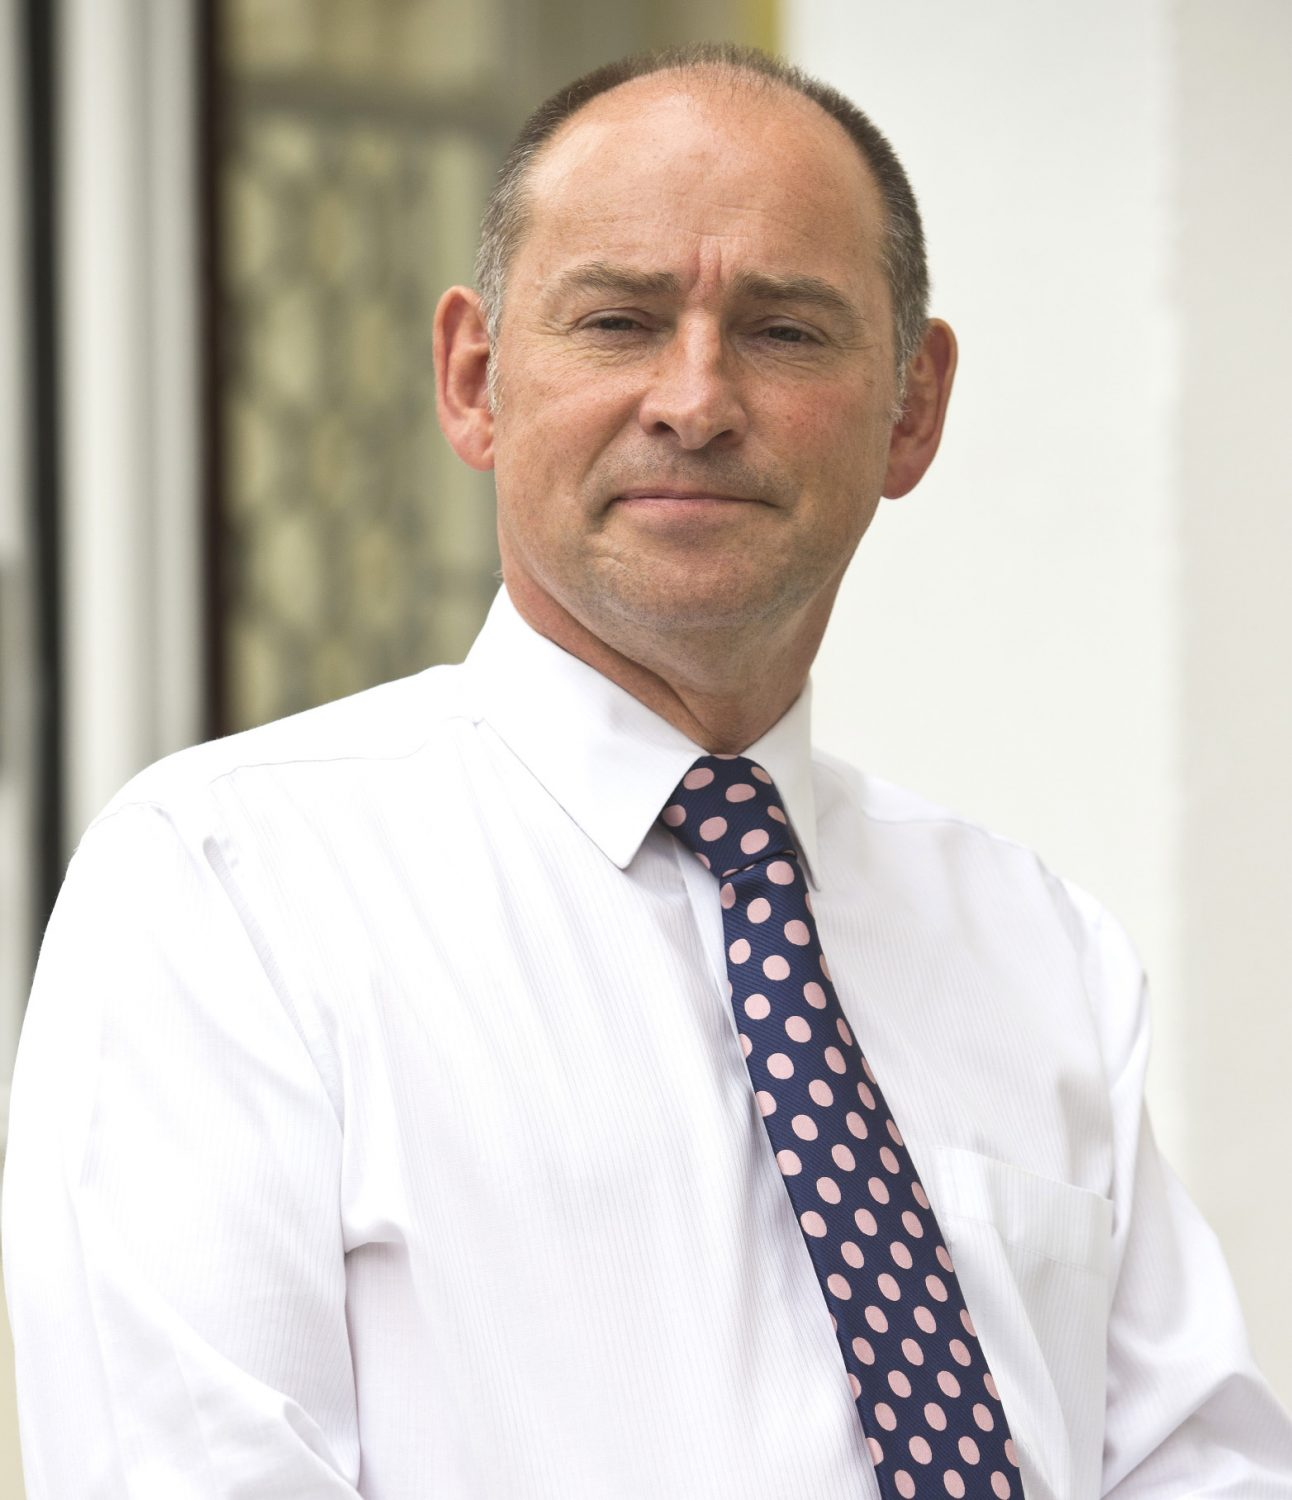 John Southworth Principal of MPW London